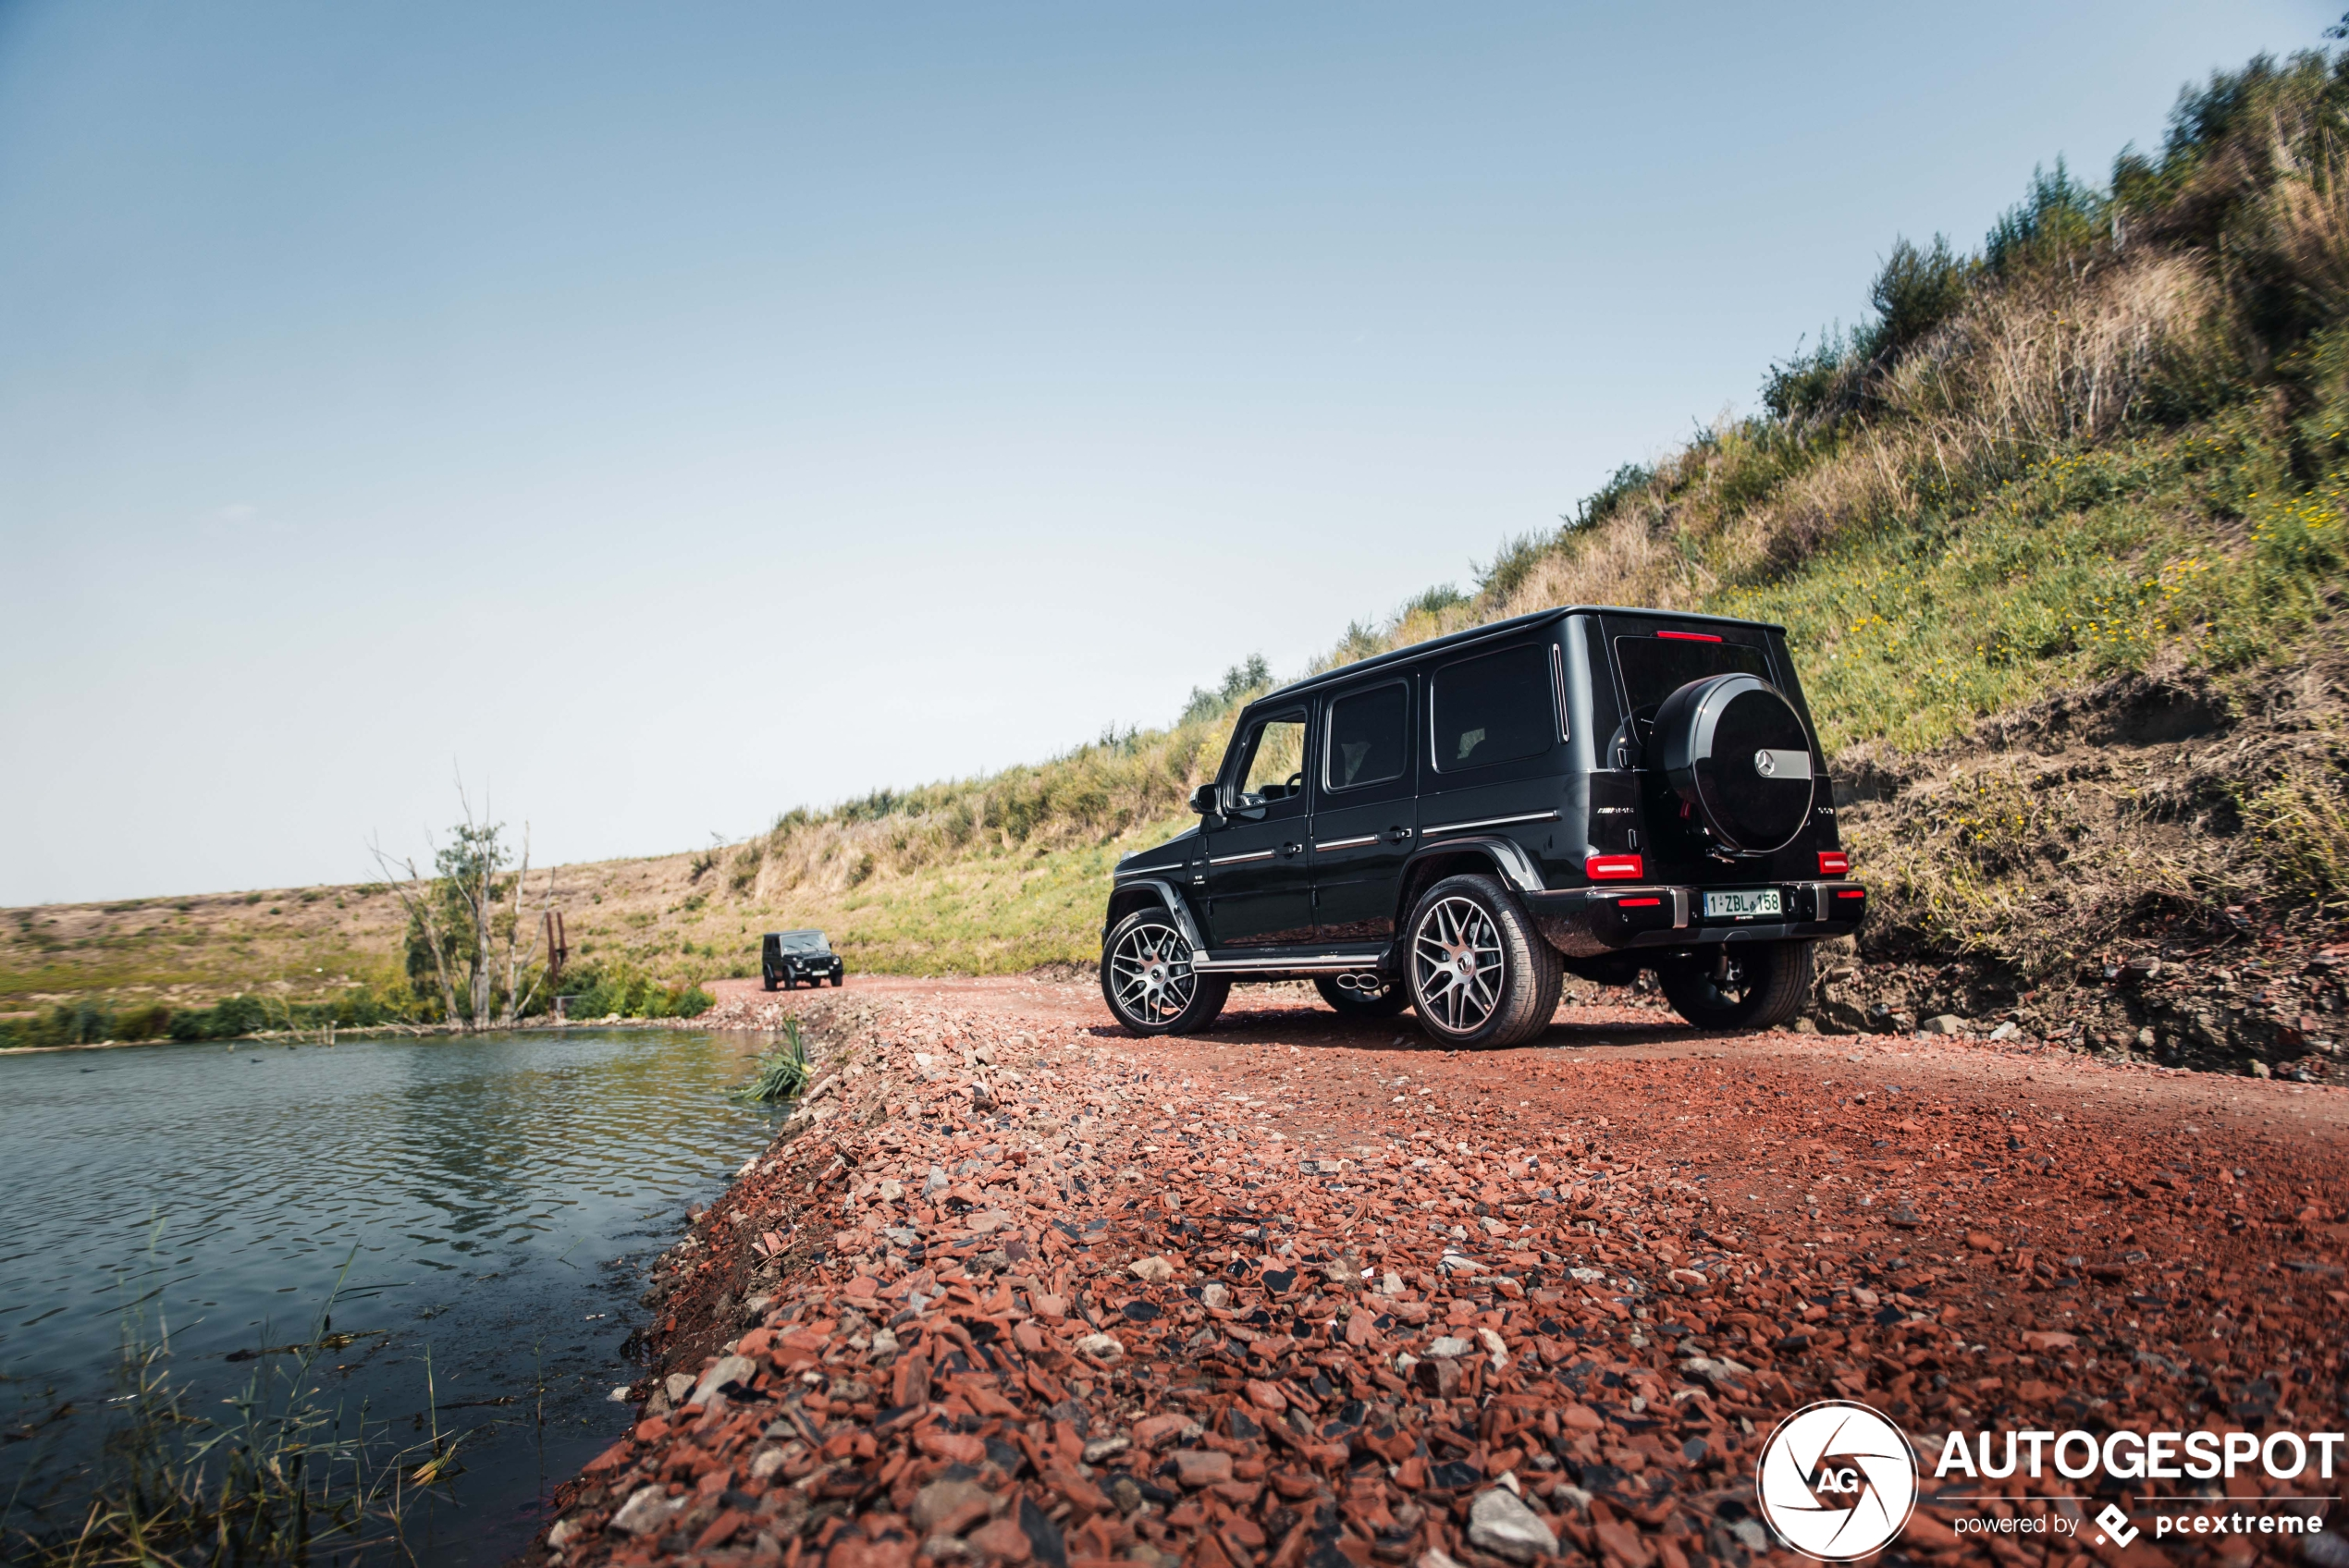 De Mercedes-AMG G 63 Stronger Than Time doorstaat alles